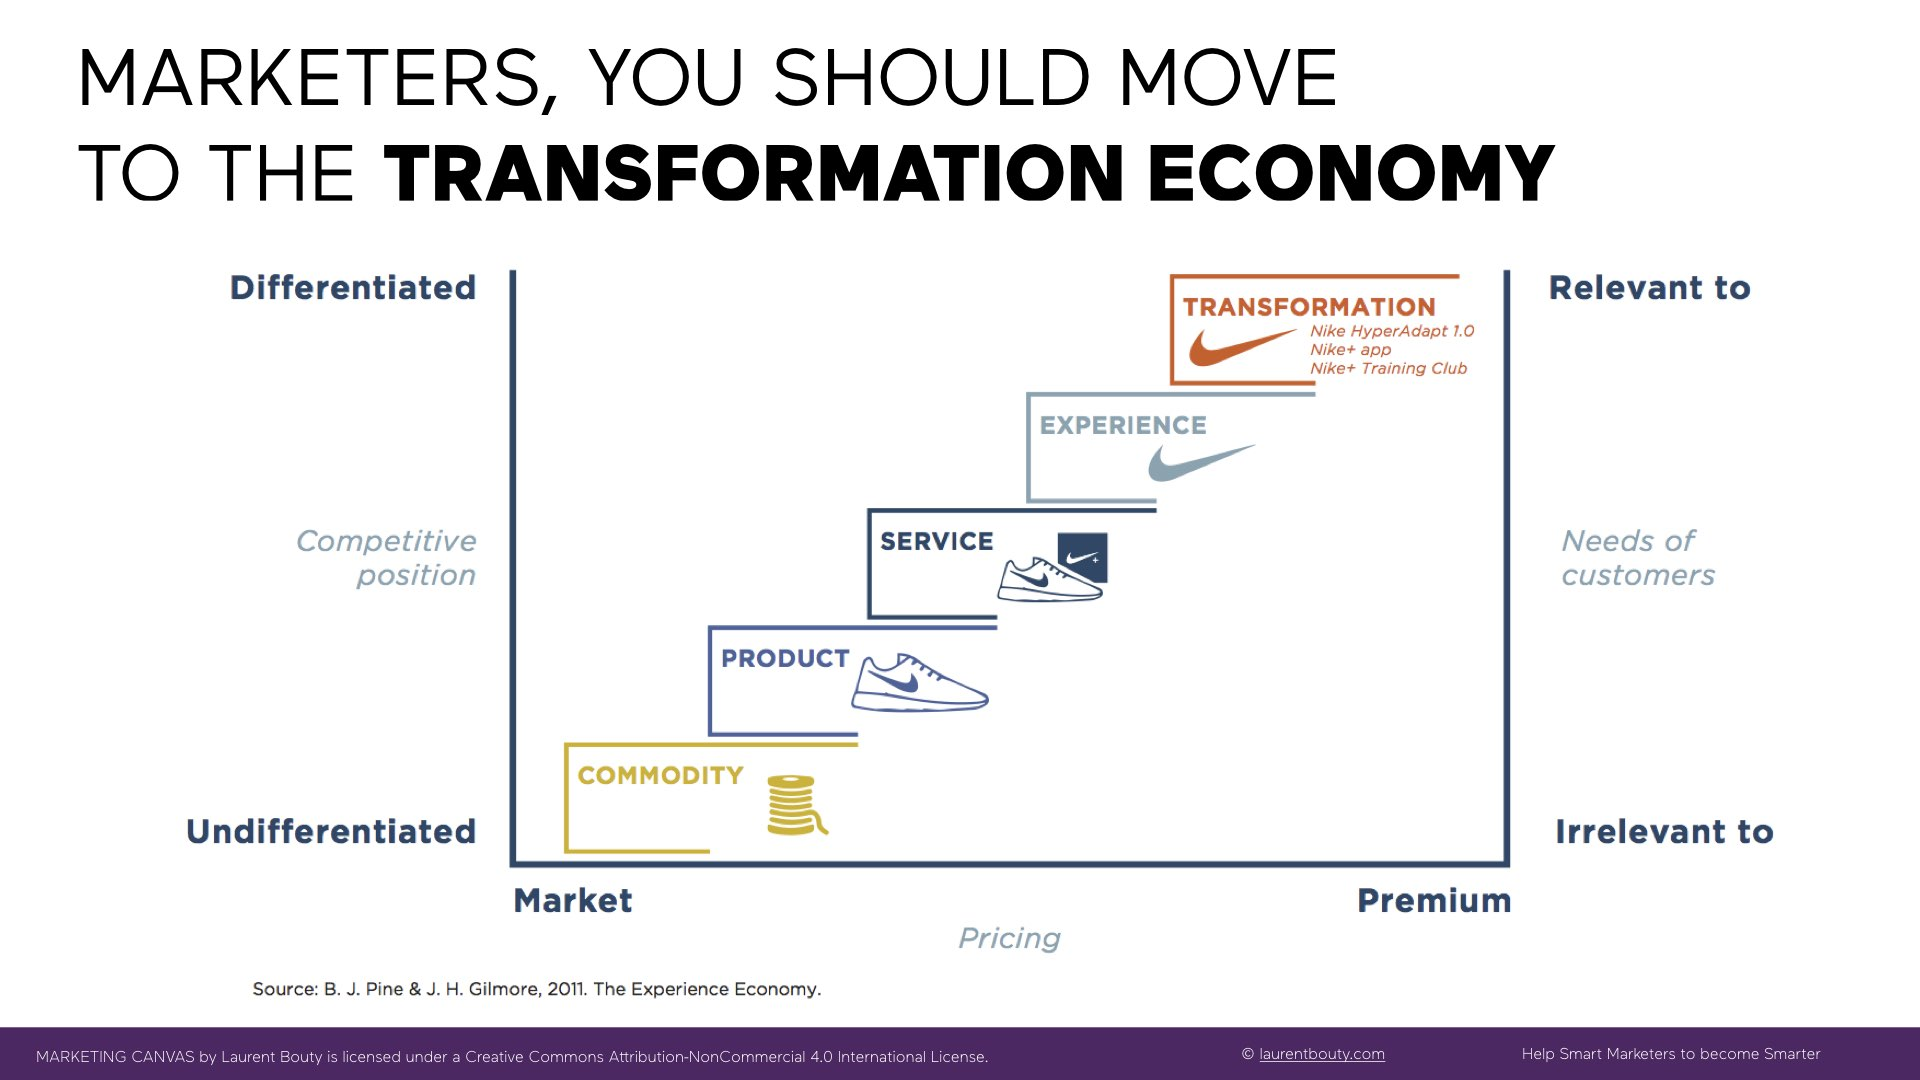 Marketers, You Should Move To The Transformation Economy